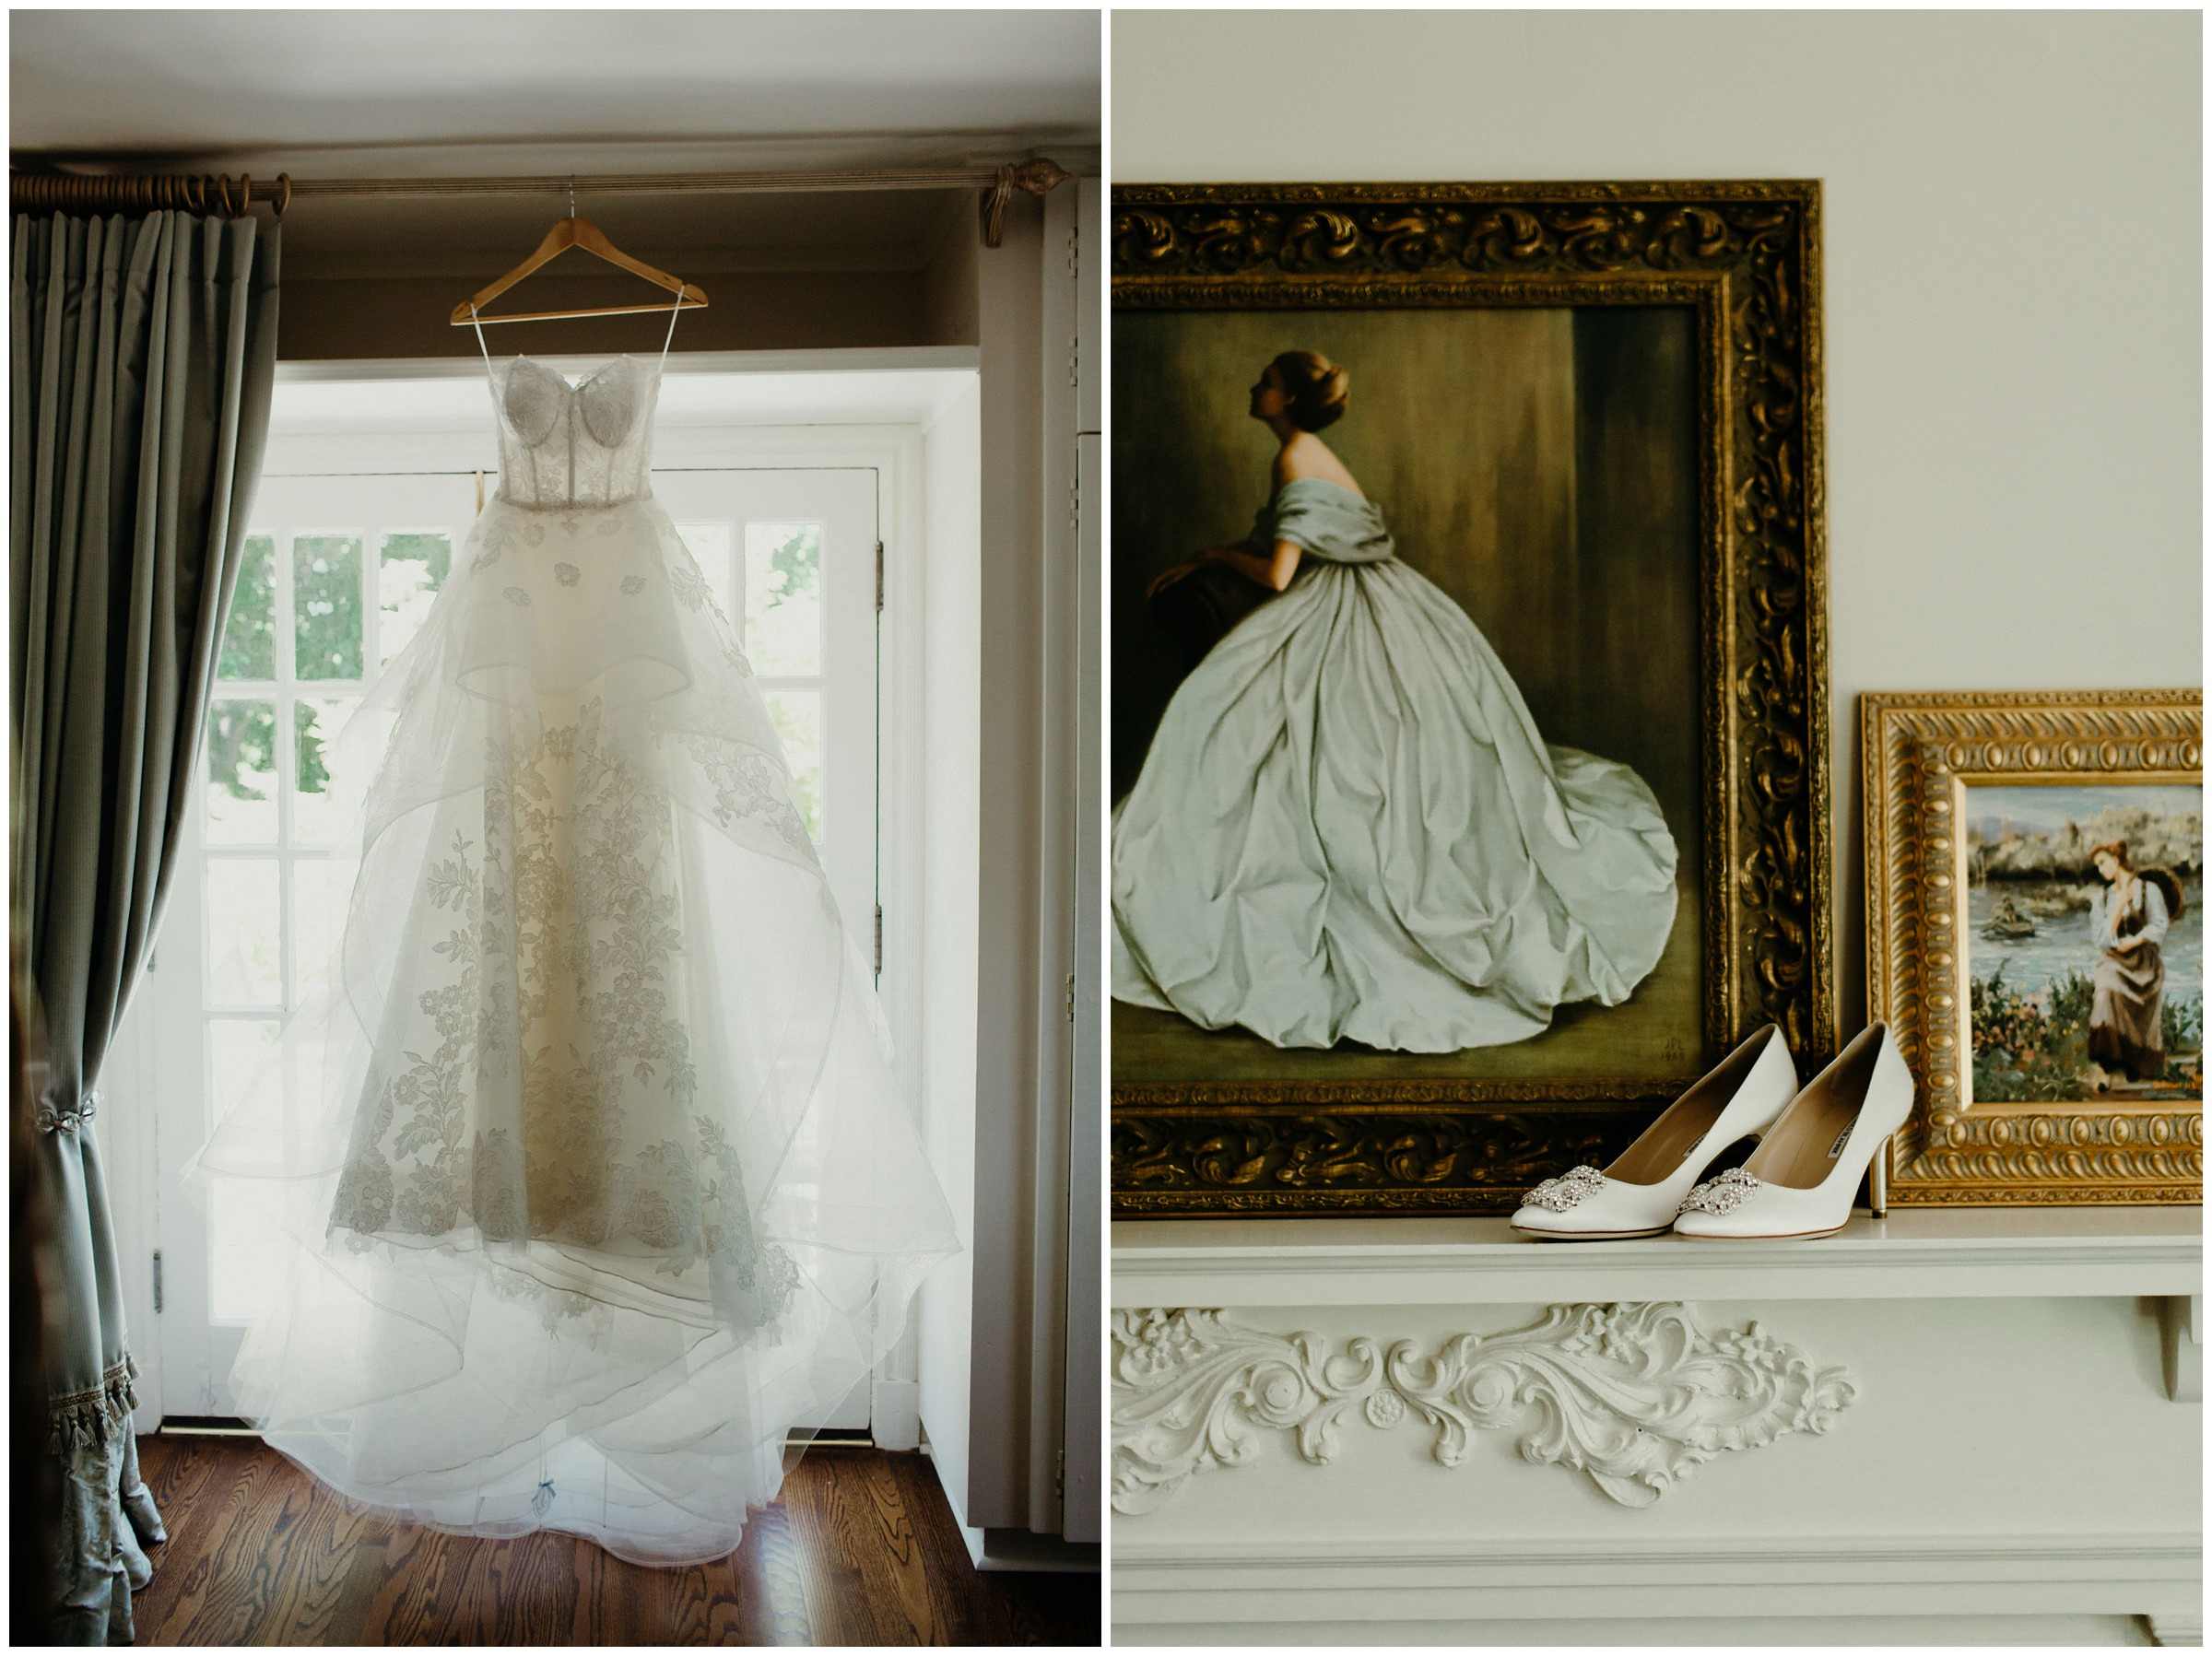 wedding dress hanging up and shoes in front of renaissance painting